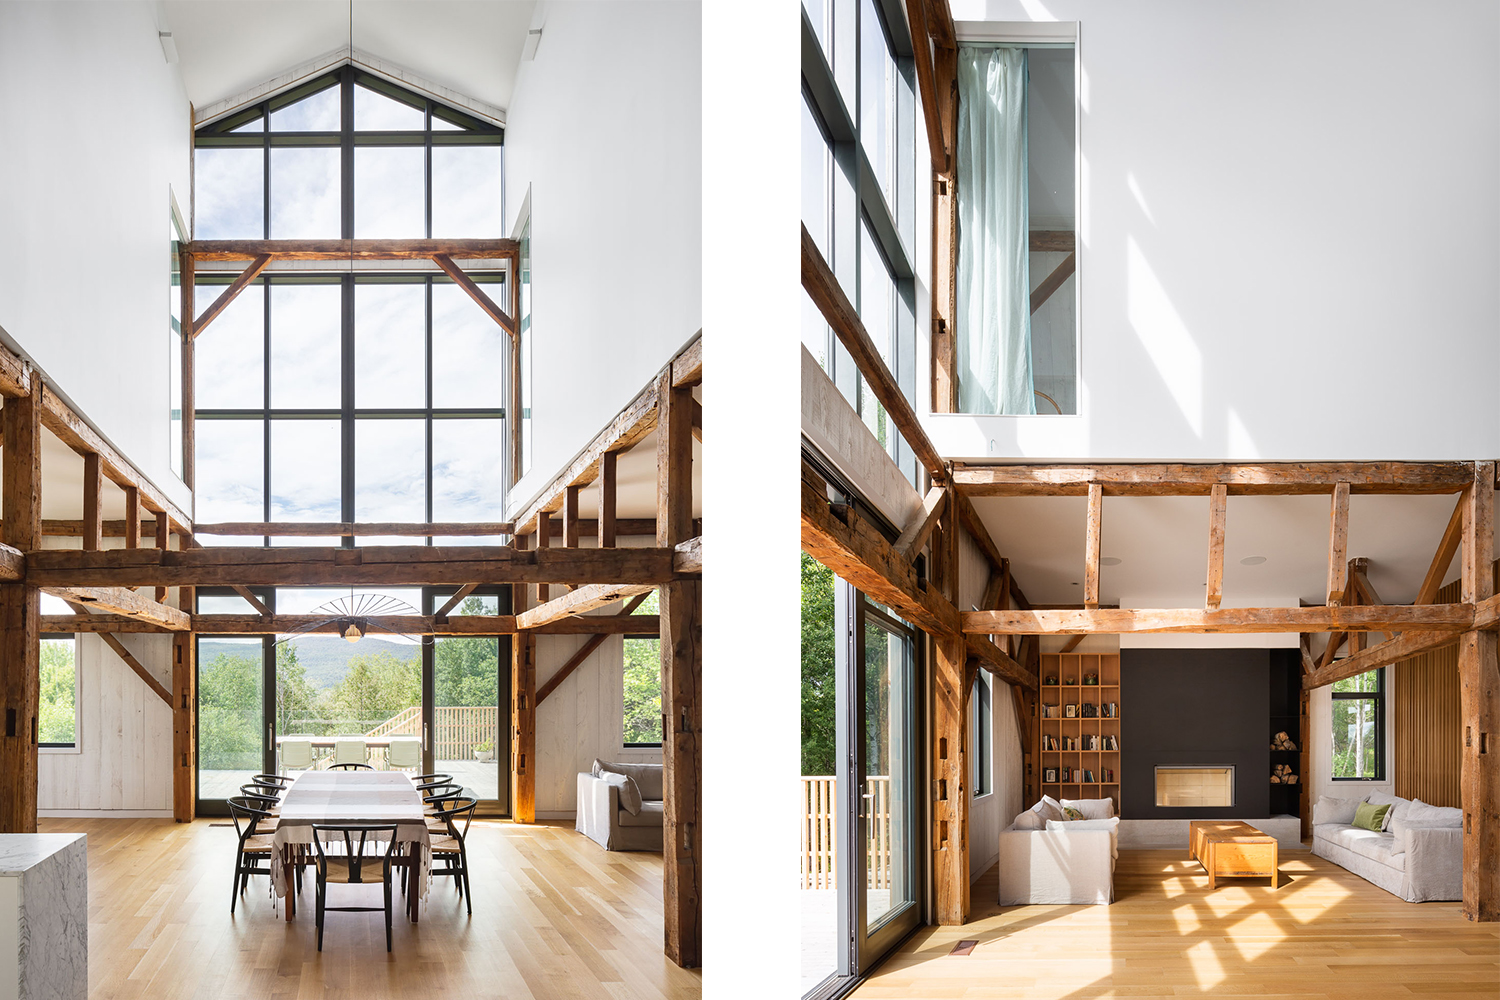 Dining room of a chalet with cathedral ceiling and large windows. Old wooden structure apparent. Black steel fireplace mantel on concrete base. White oak floor